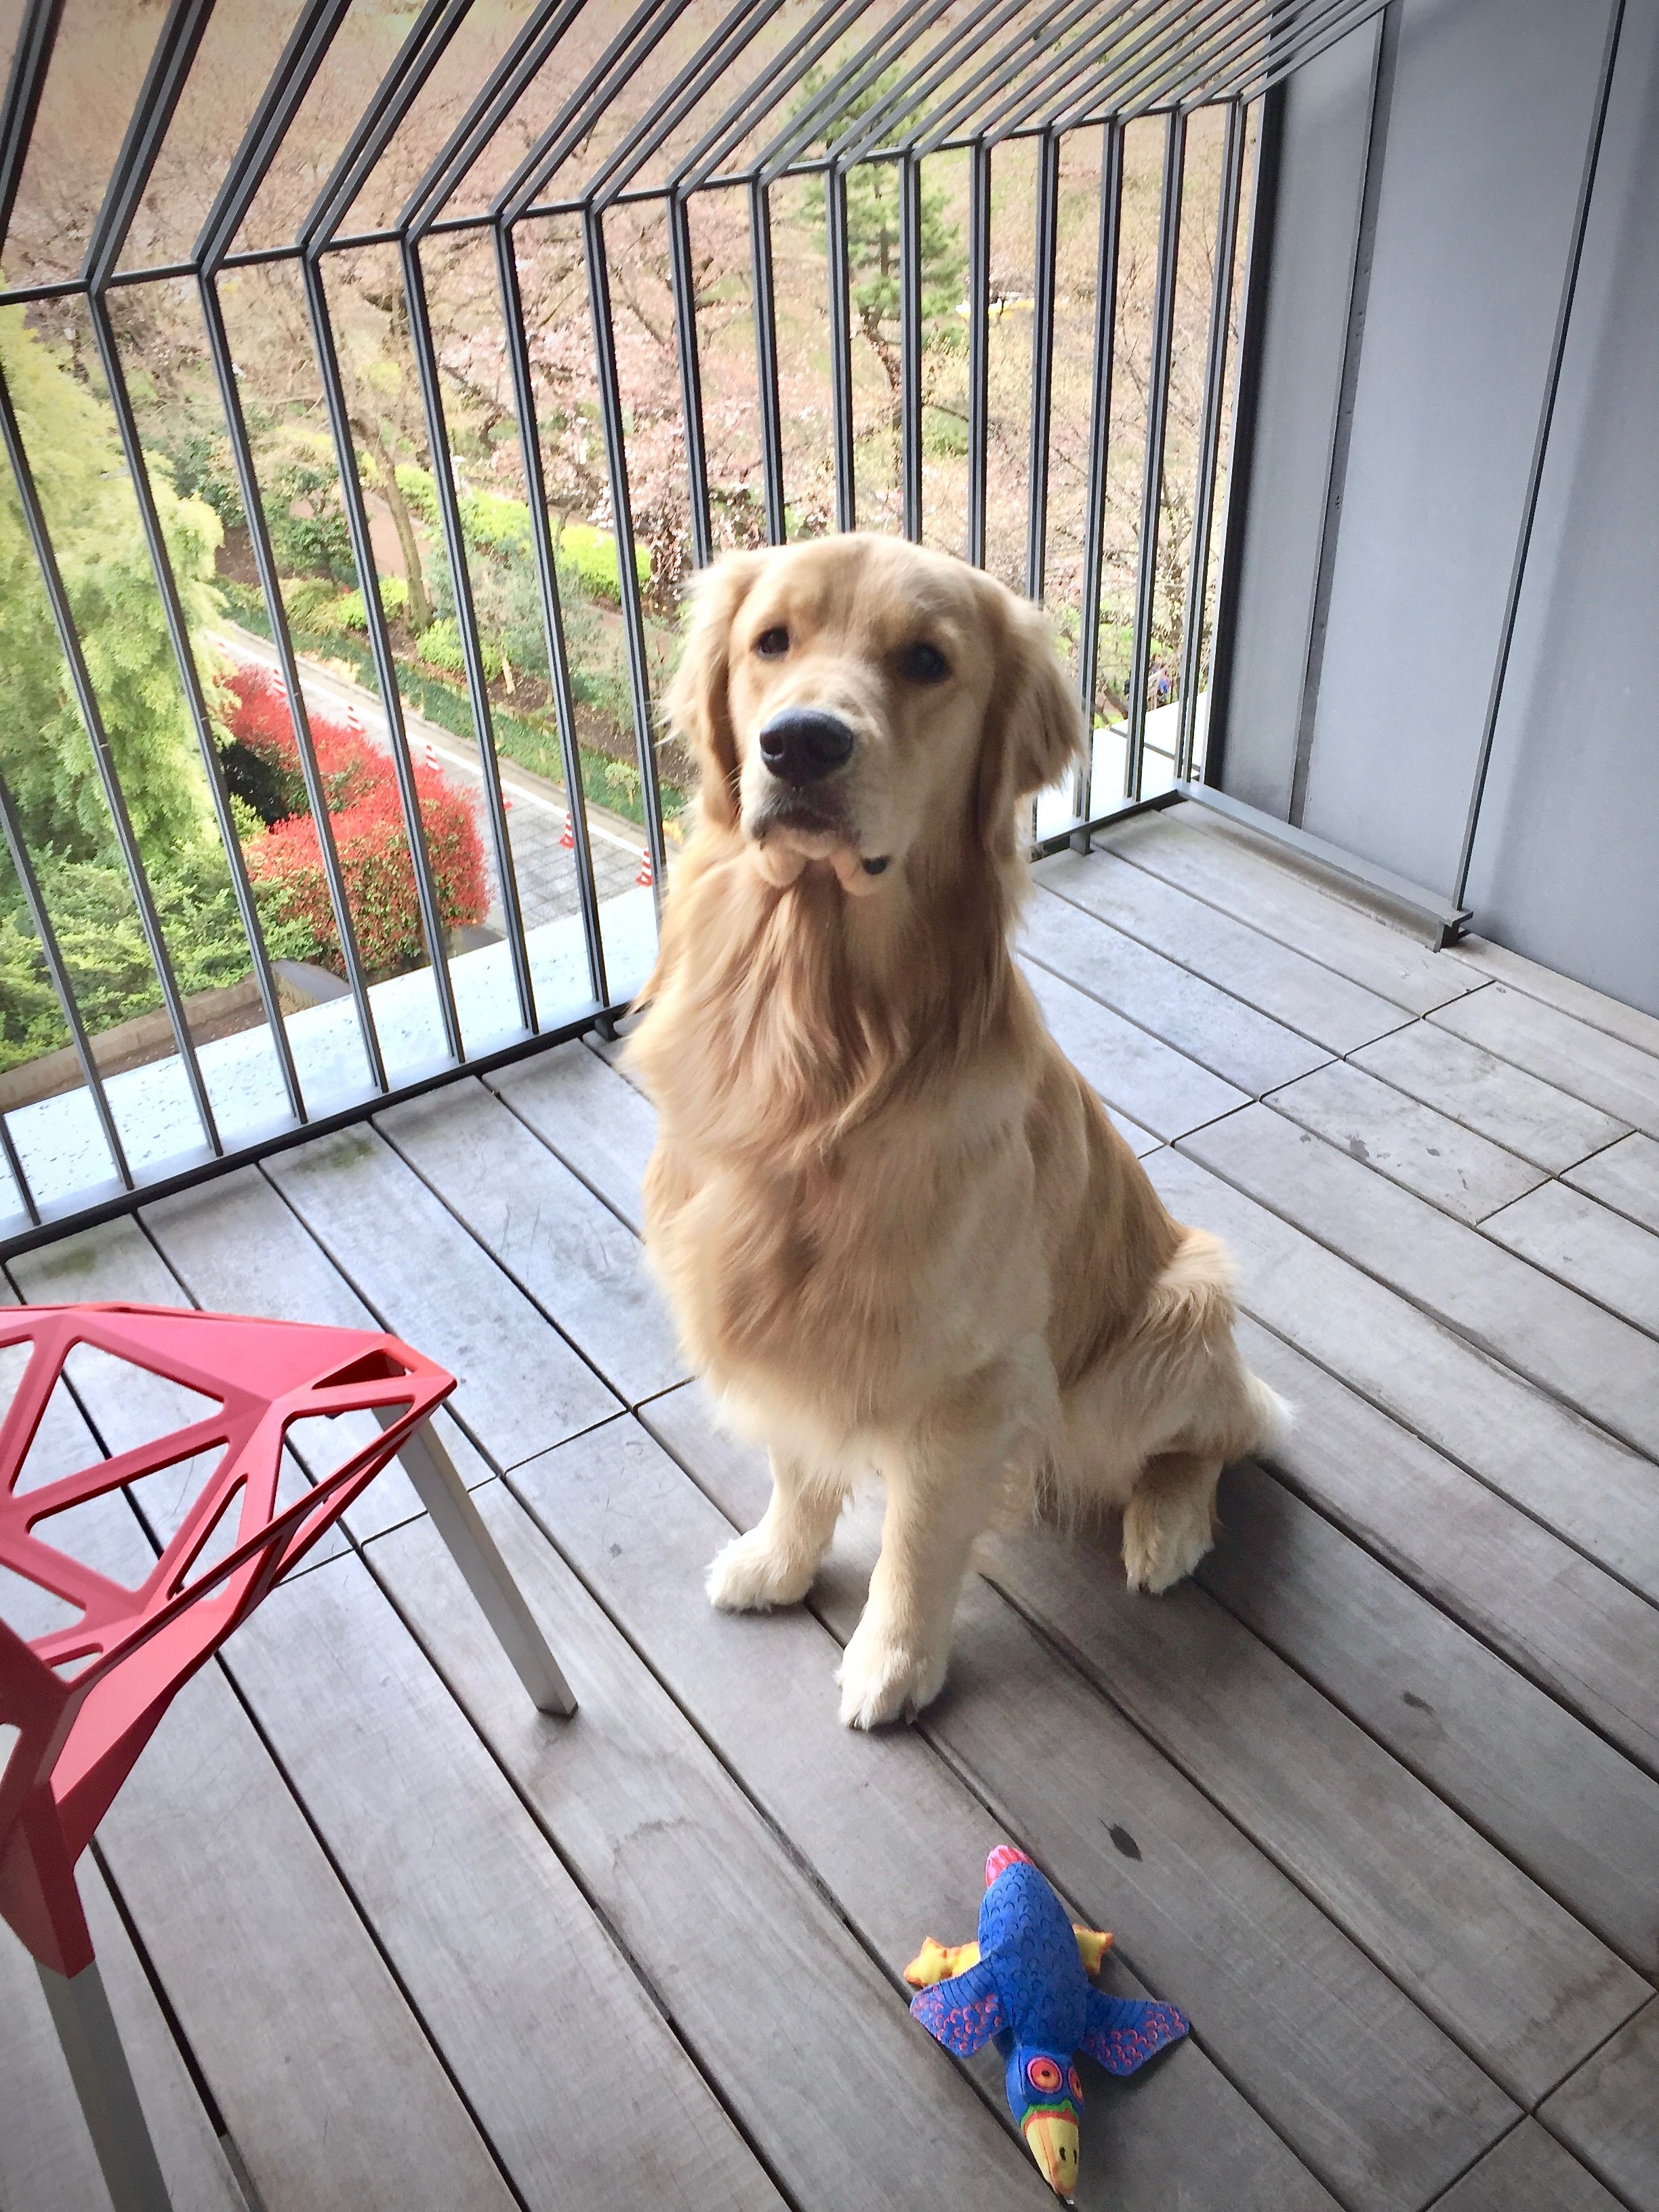 Pin By Leslie Lami On Best Of Friends Golden Dog Dog Pictures Dogs